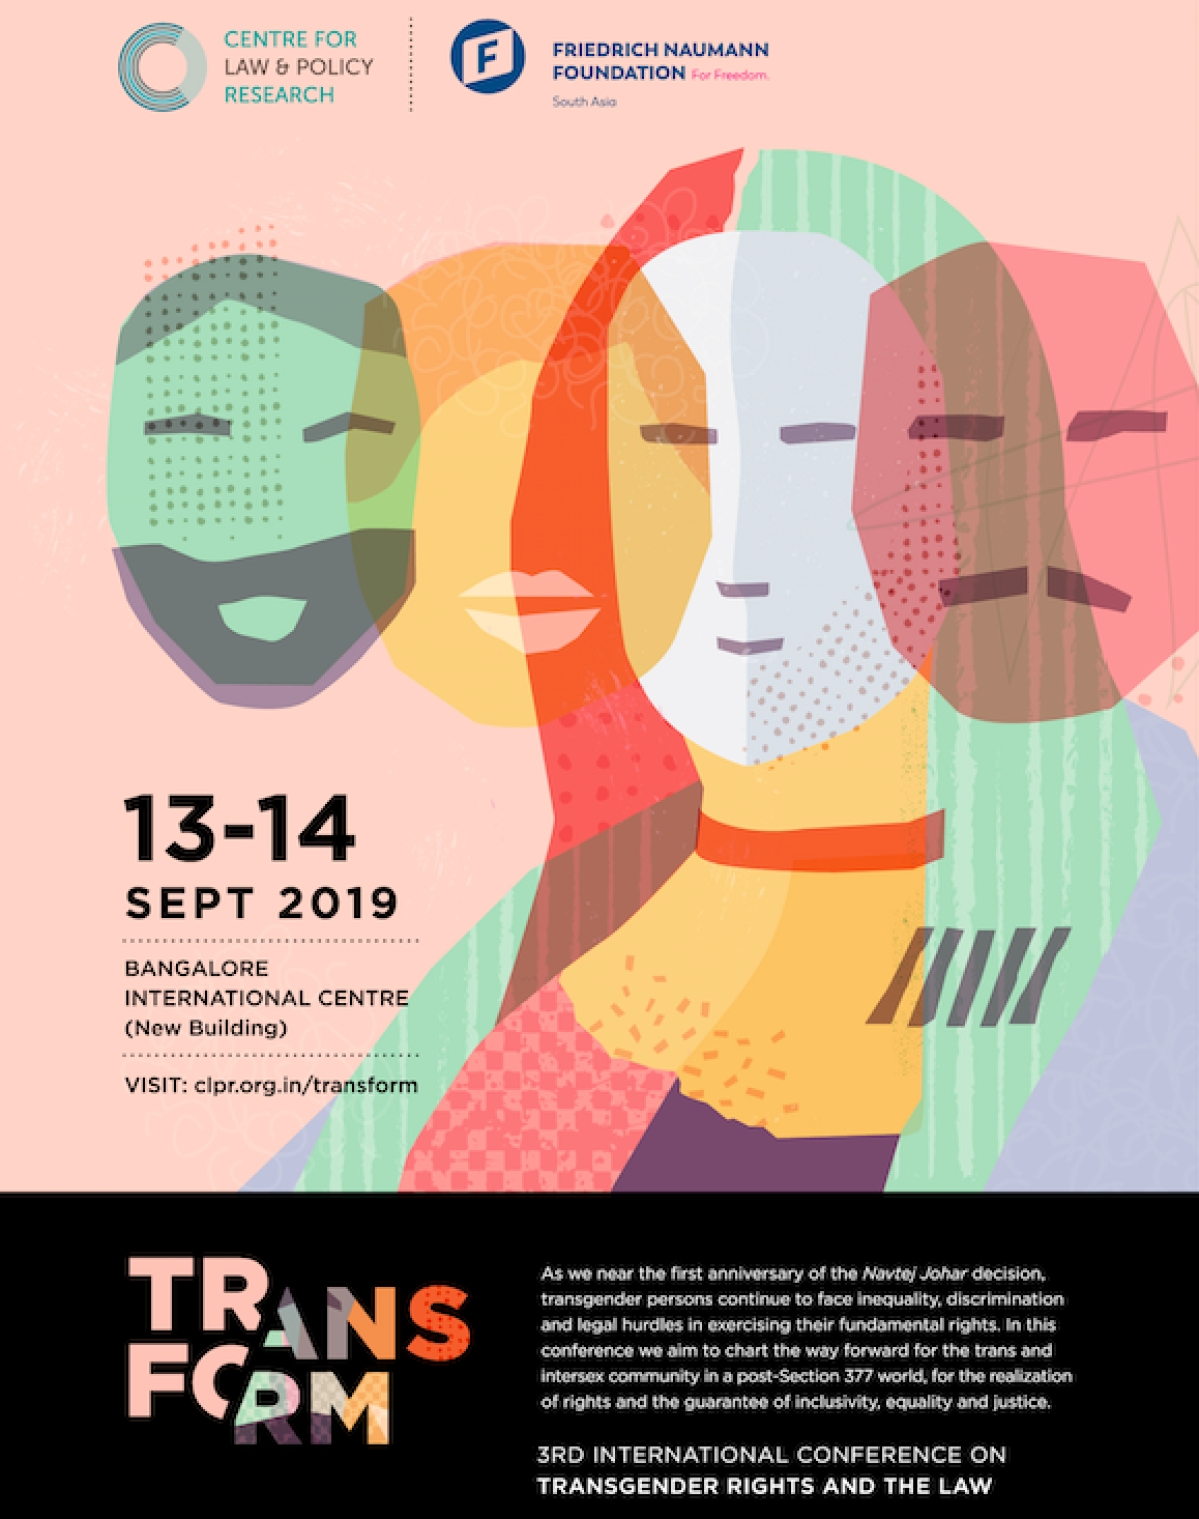 Transform 2019: International Conference on Transgender Rights and the Law